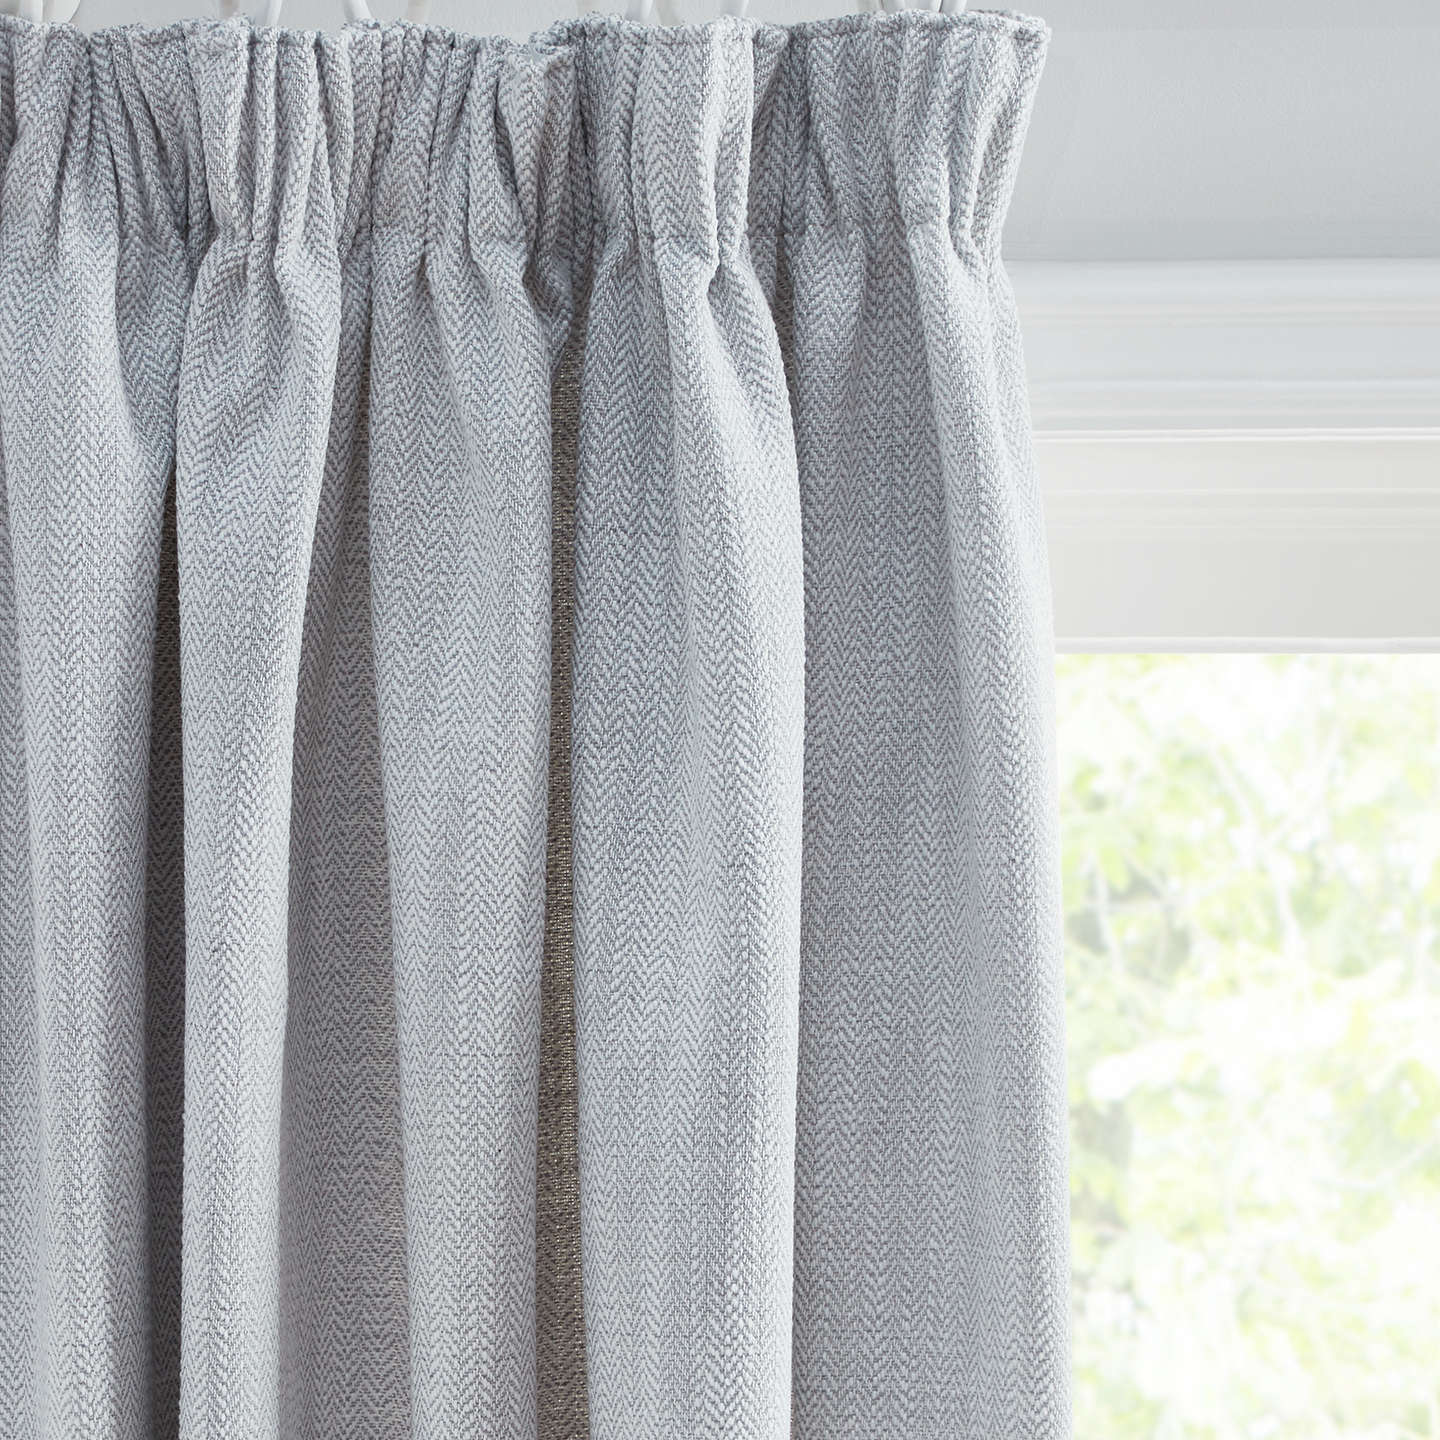 Croft Collection Lachlan Pair Lined Pencil Pleat Curtains, Blue Grey by Croft Collection